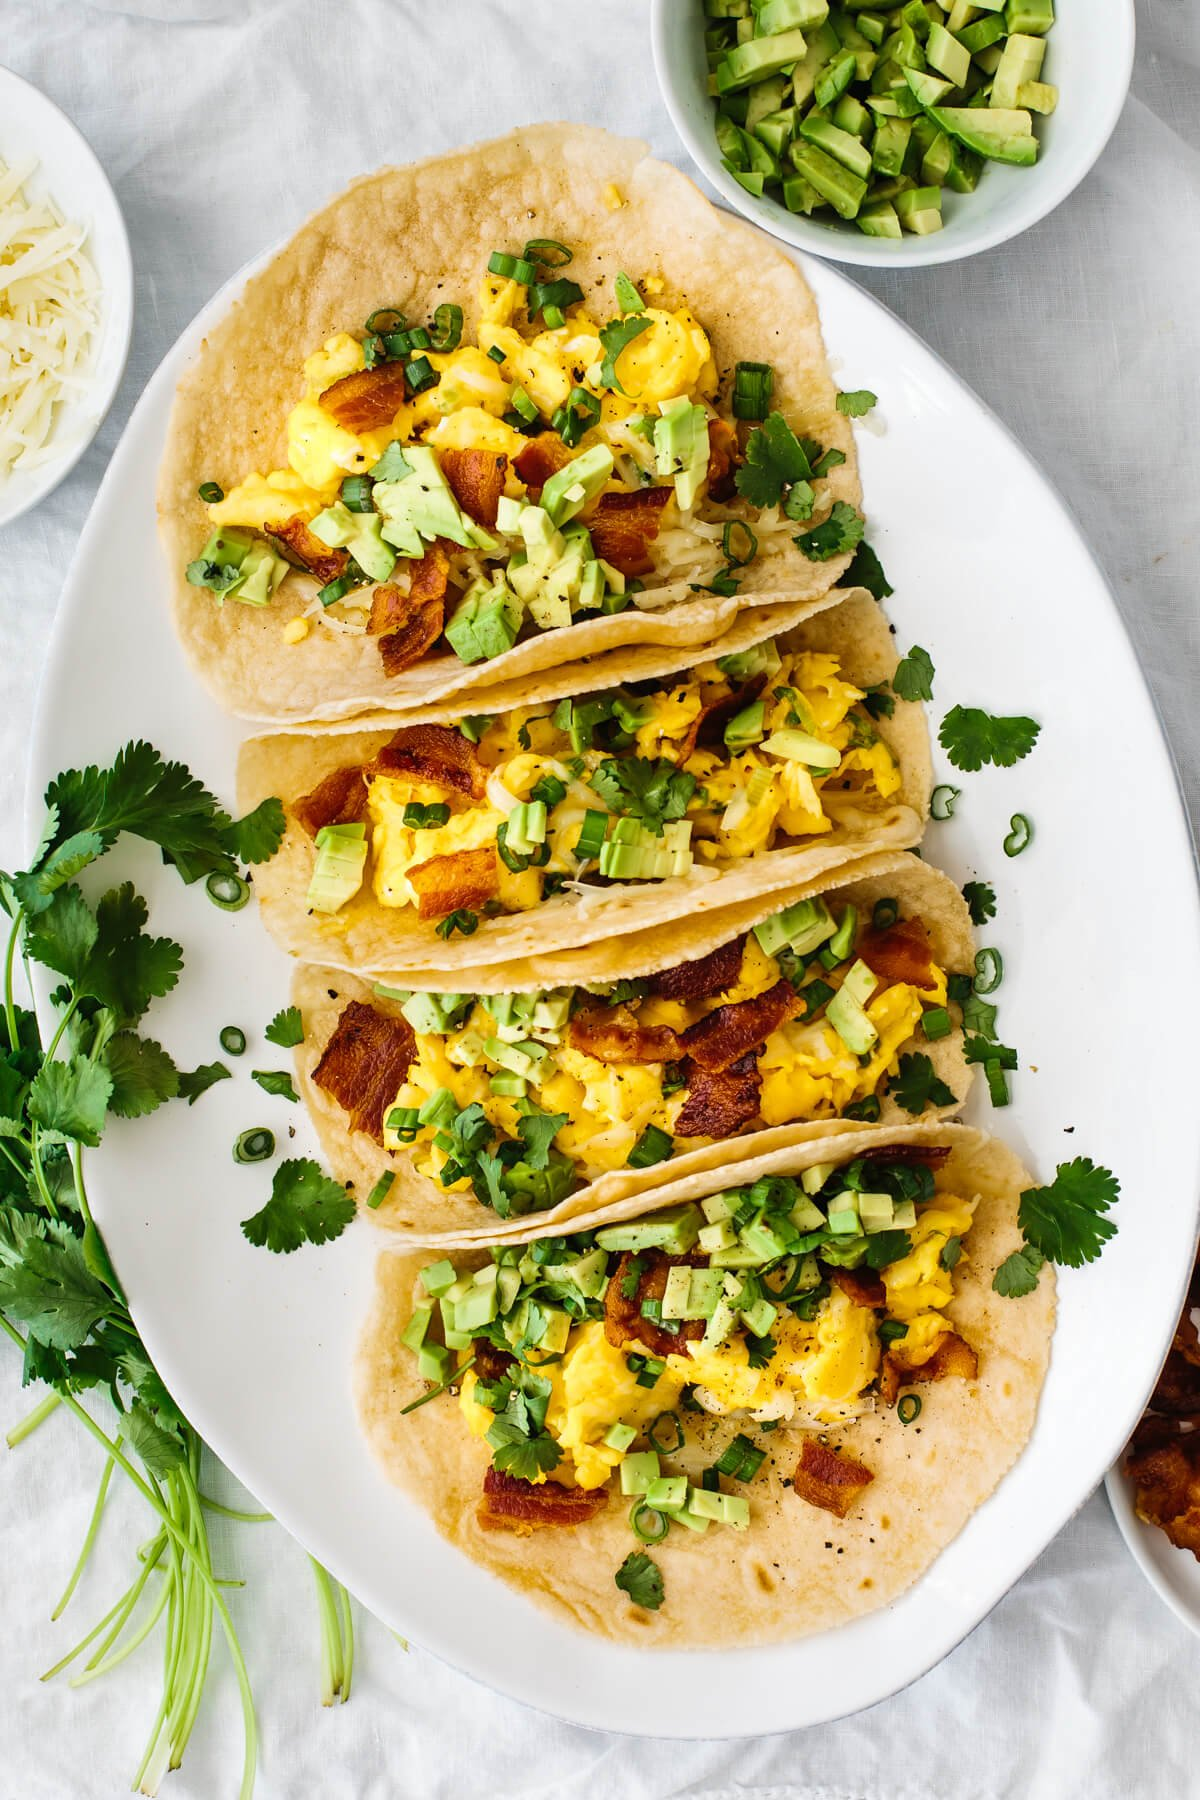 Breakfast tacos on a plate next to cilantro and avocado.